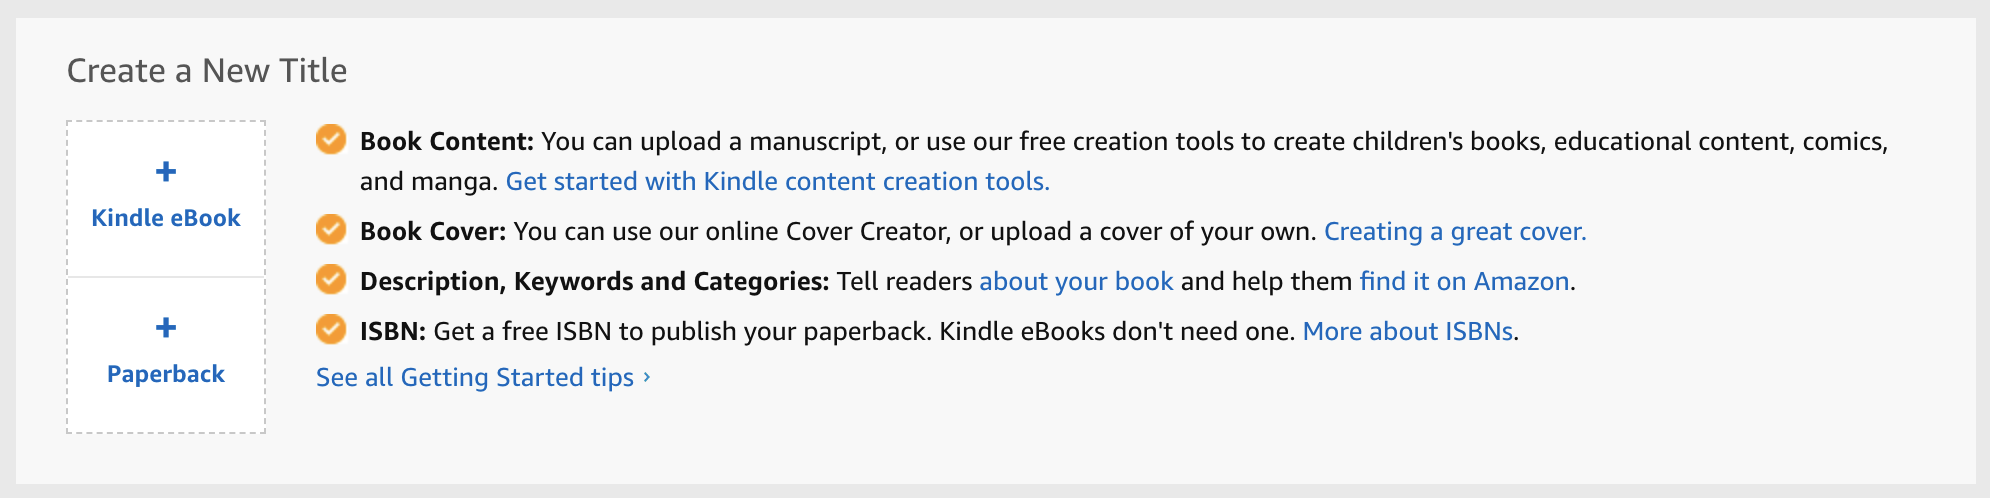 create a new title on amazon